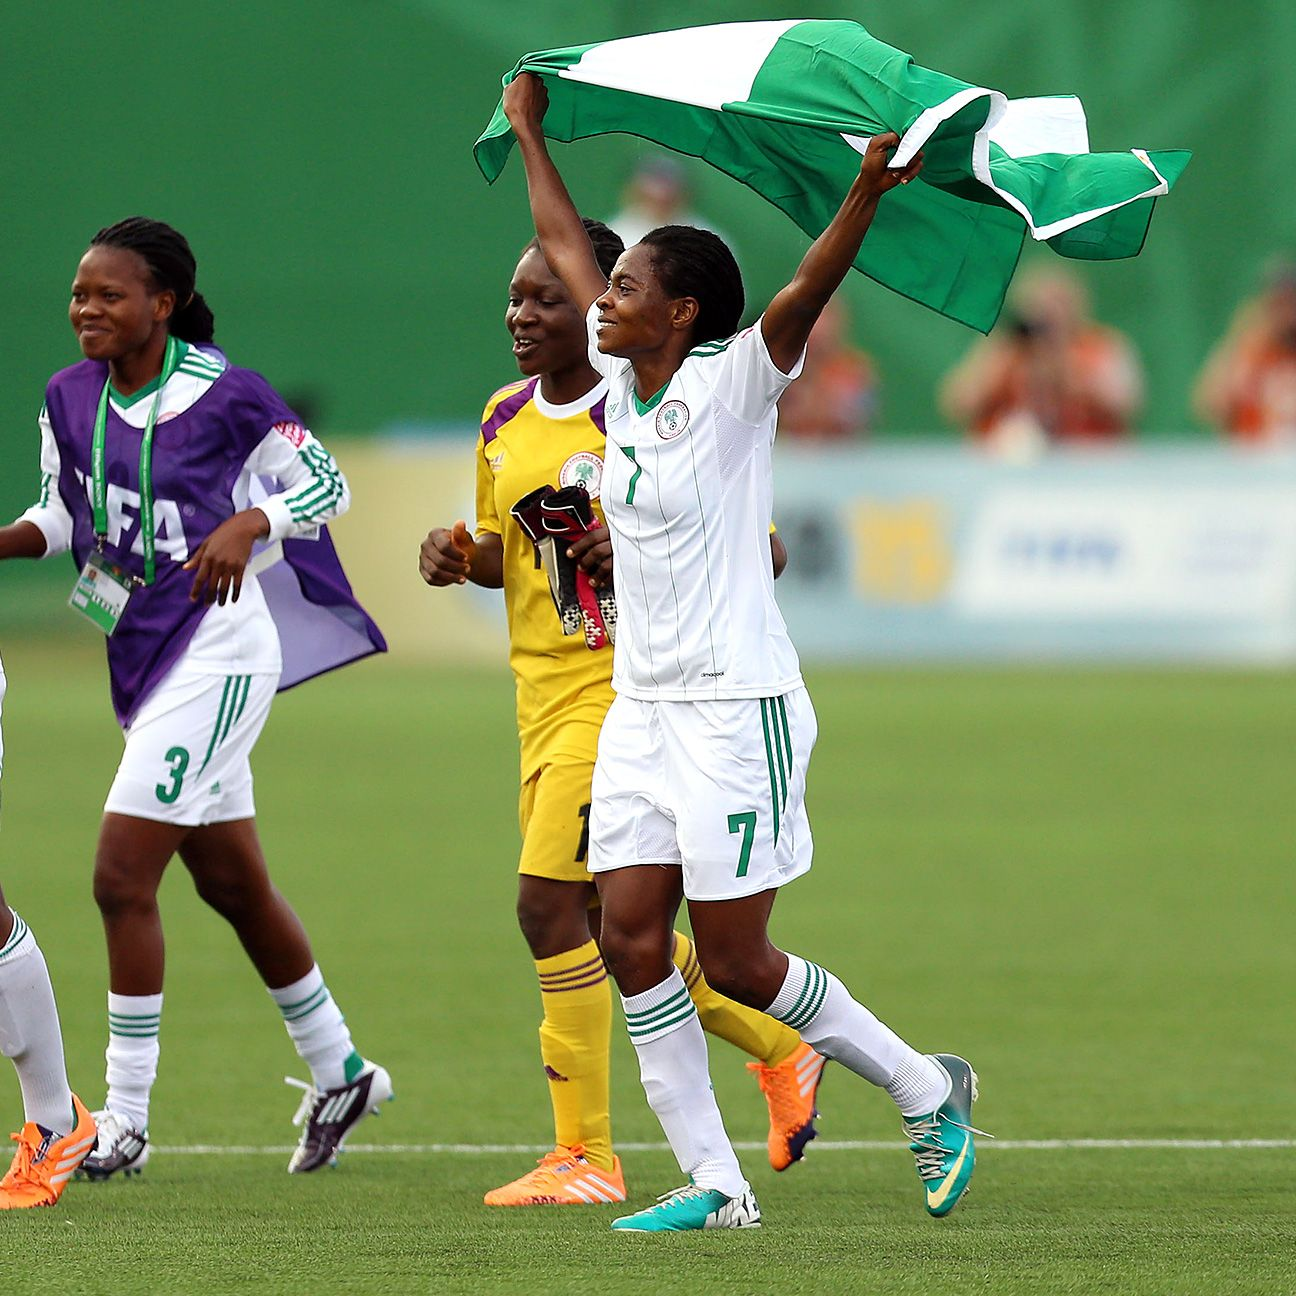 Nigeria are one step away from winning the Under-20 Women's World Cup.